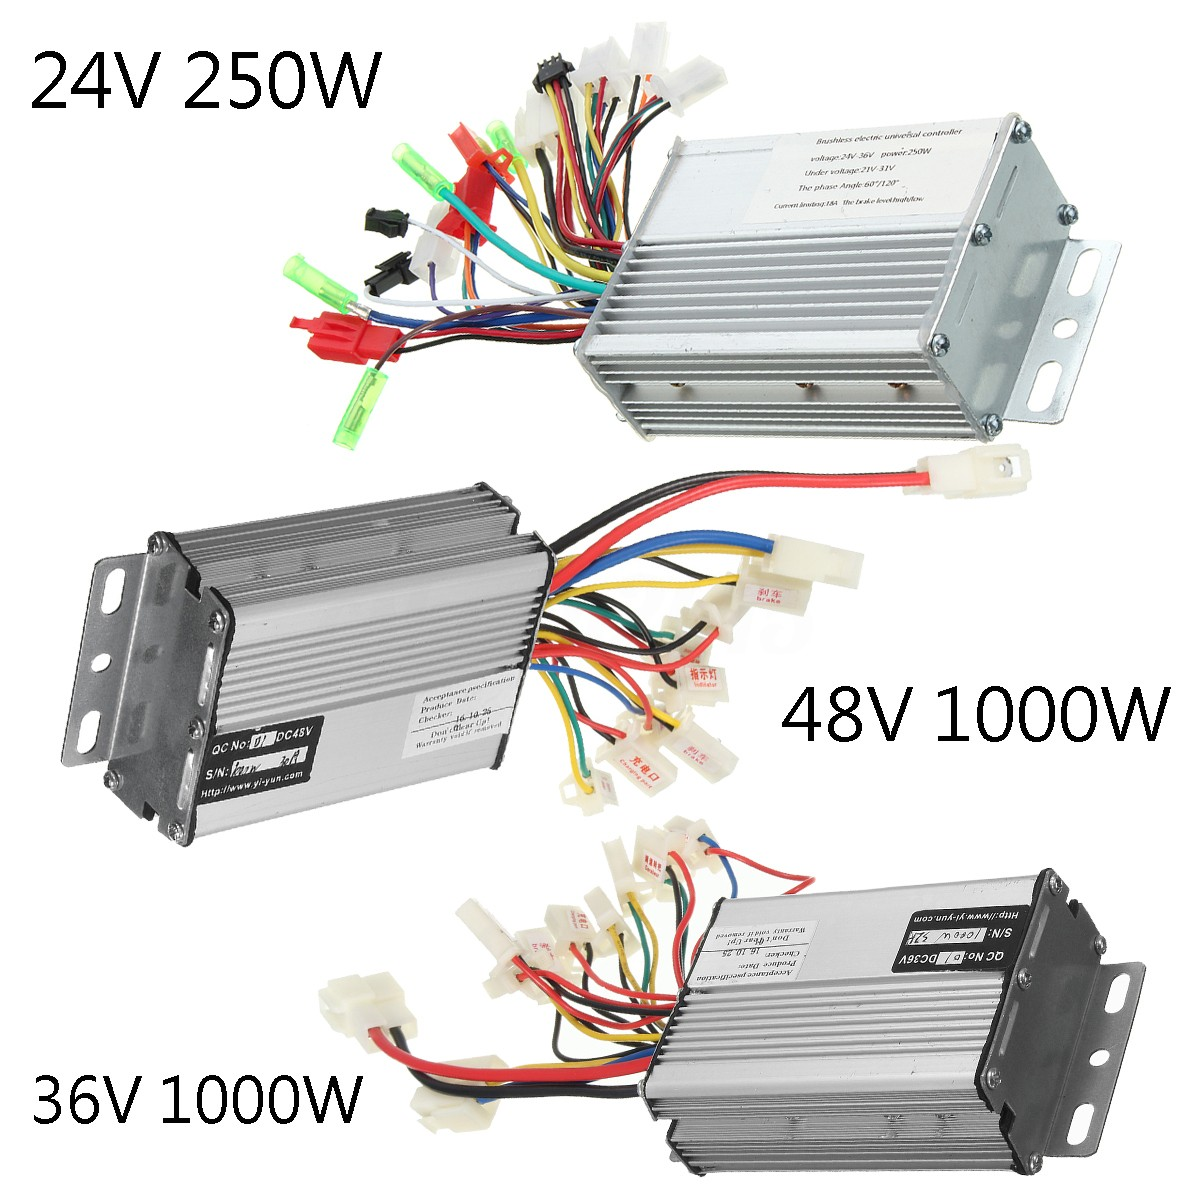 Evo Powerboard Wiring Diagram Trusted Diagrams E Bike 24v Diy Enthusiasts U2022 Snatch Block